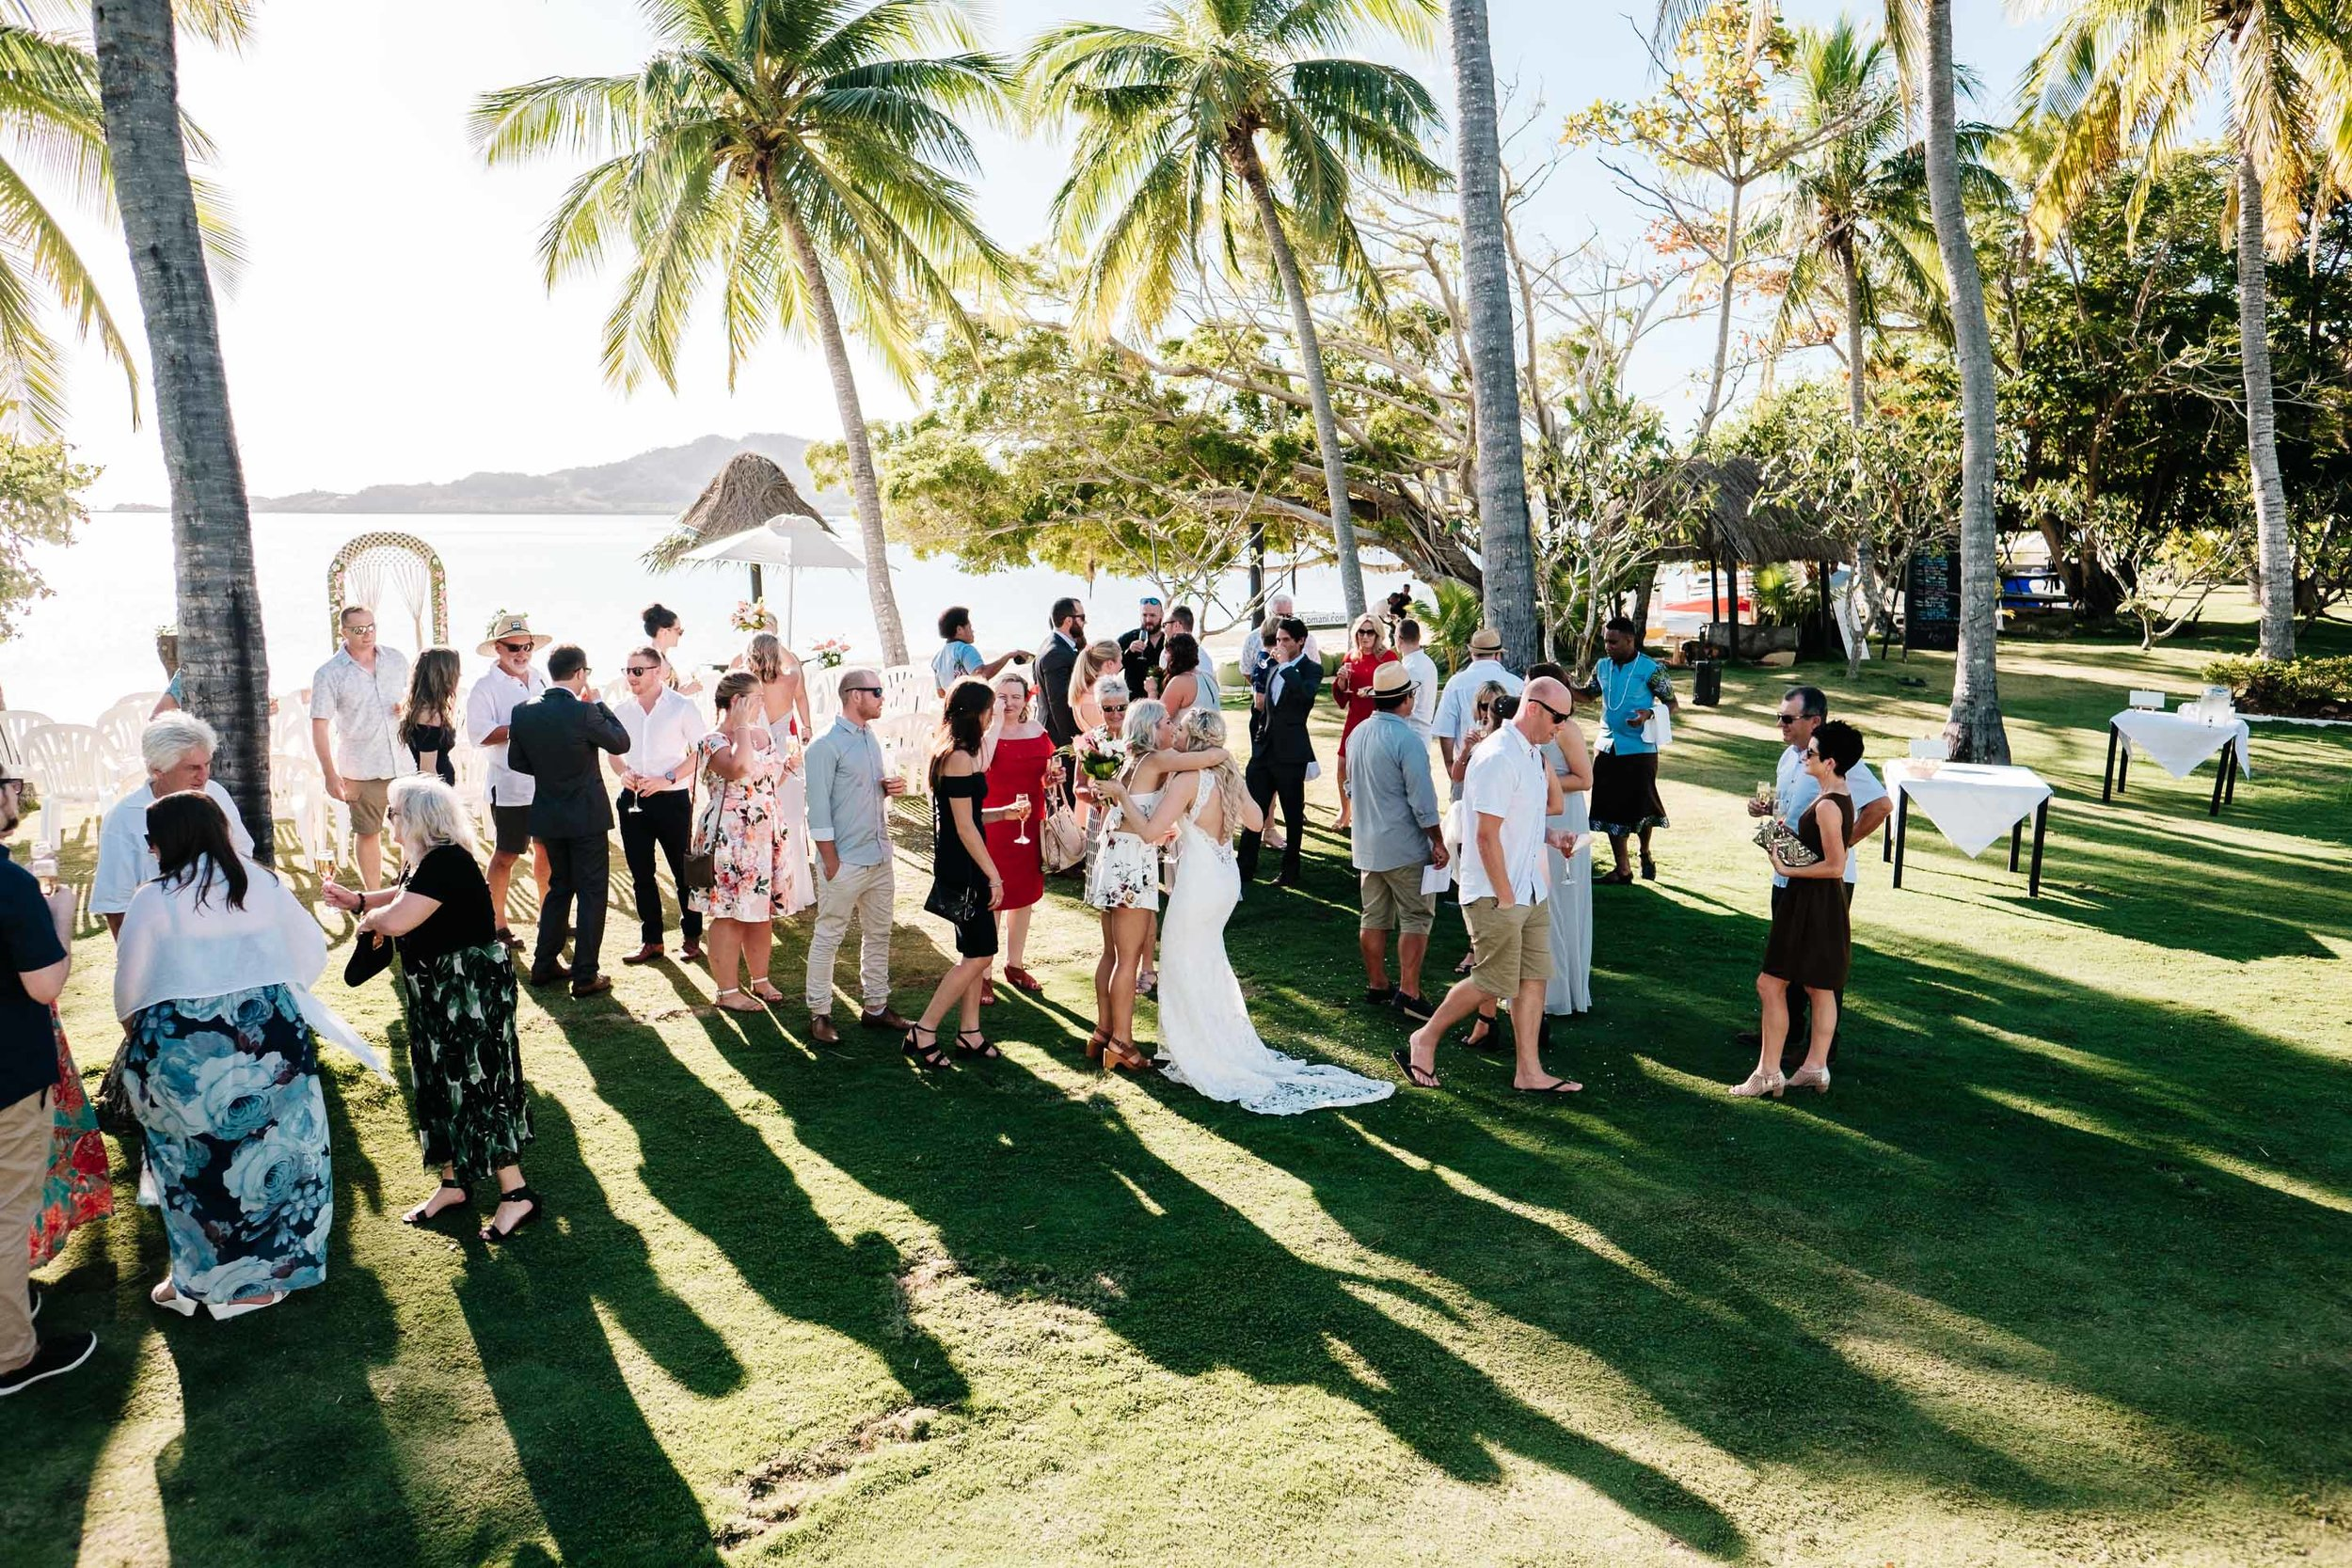 guests congratulate the newlyweds